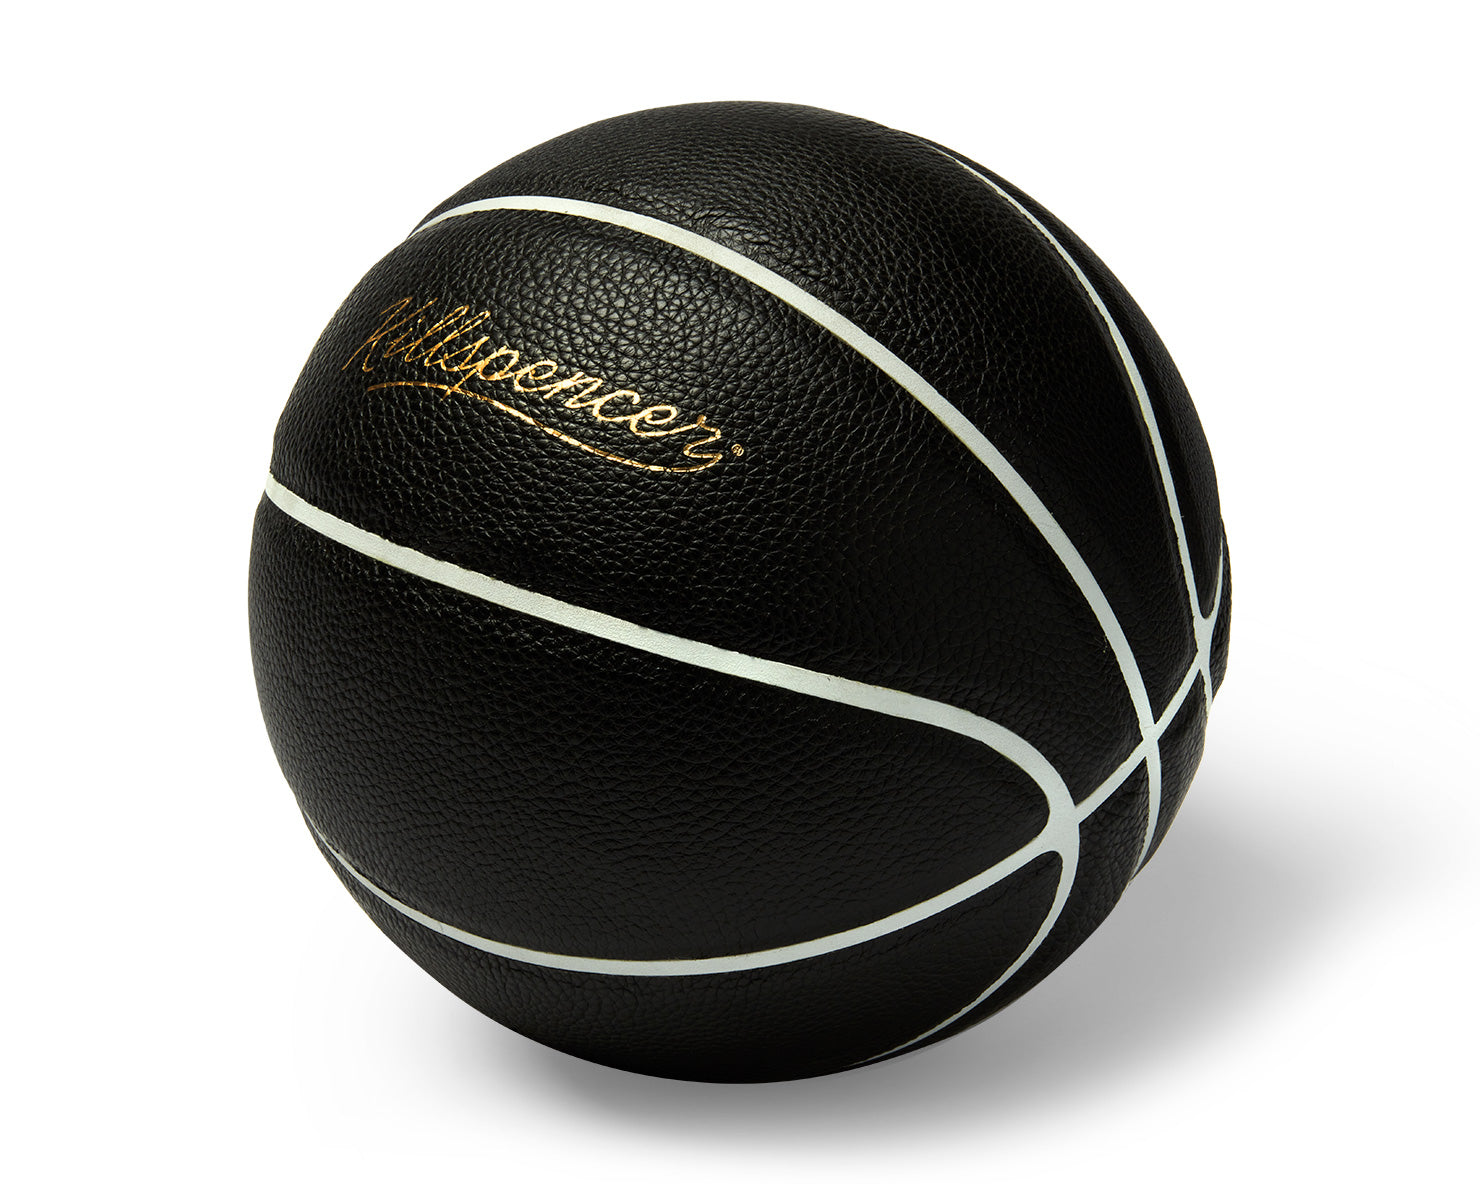 INDOOR FULL-SIZE BASKETBALL | KILLSPENCER® - Black Leather with White Grip